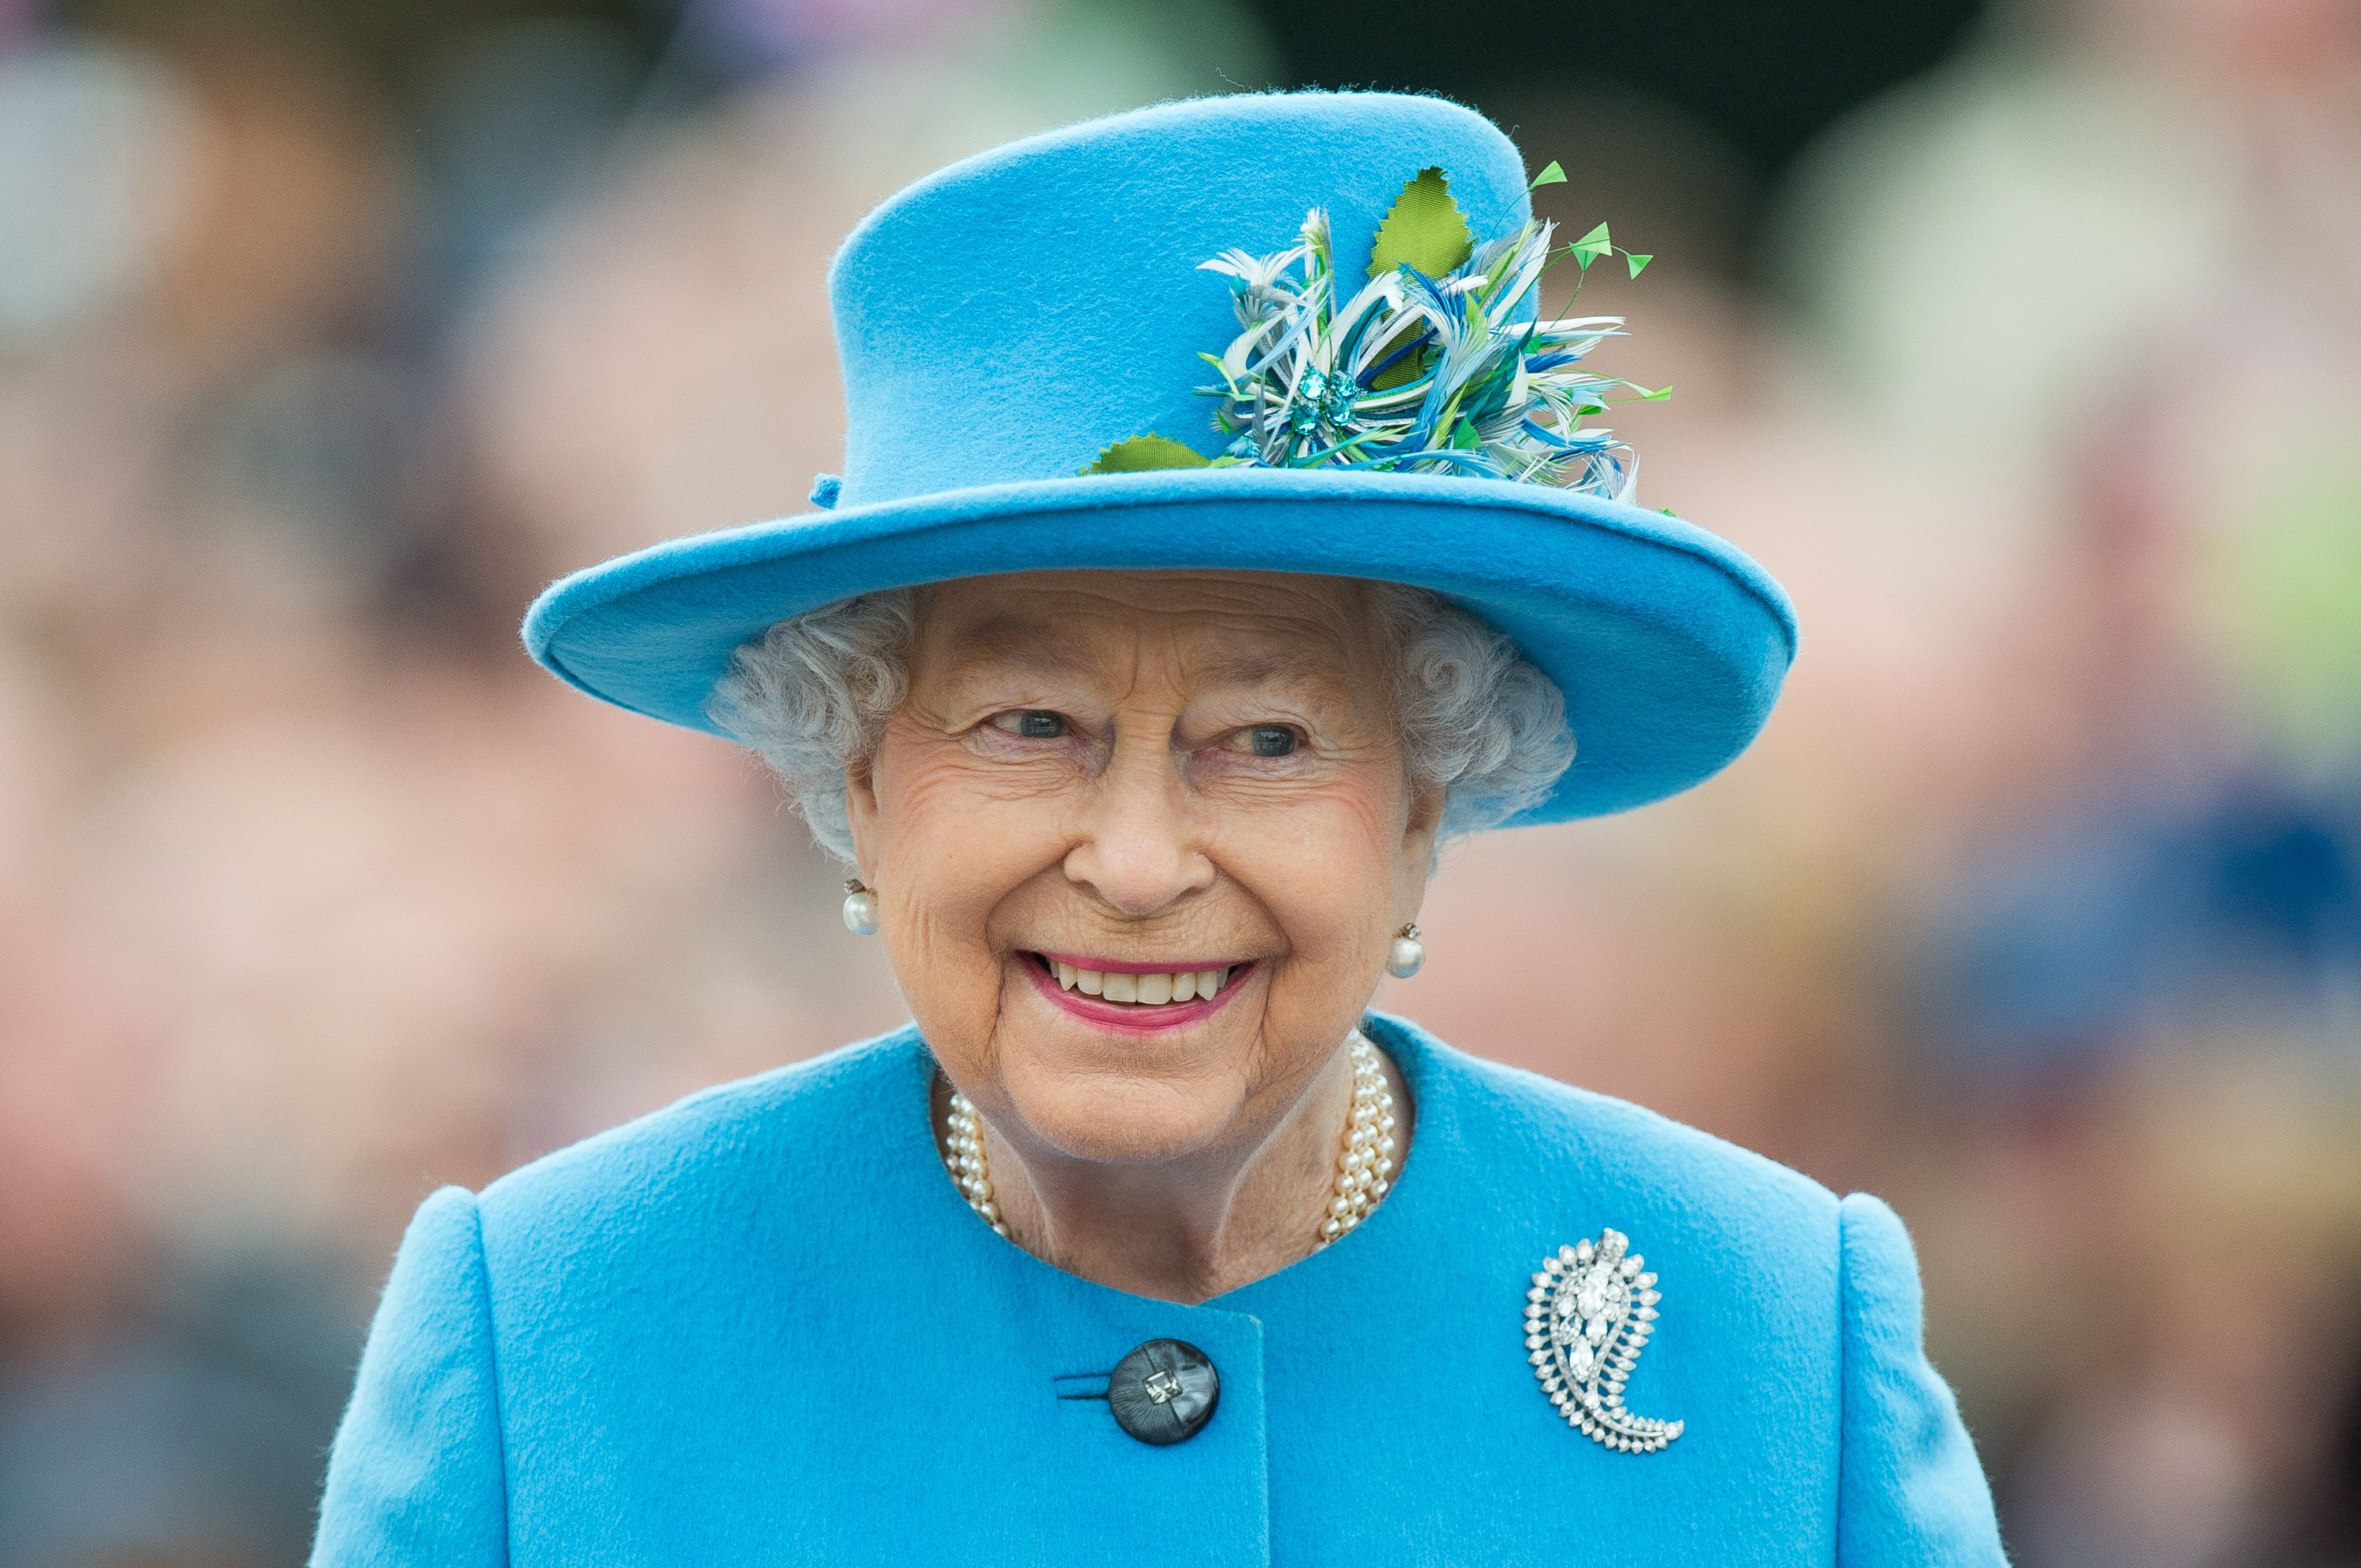 An In-Depth Look at How Queen Elizabeth Has Amassed Such a